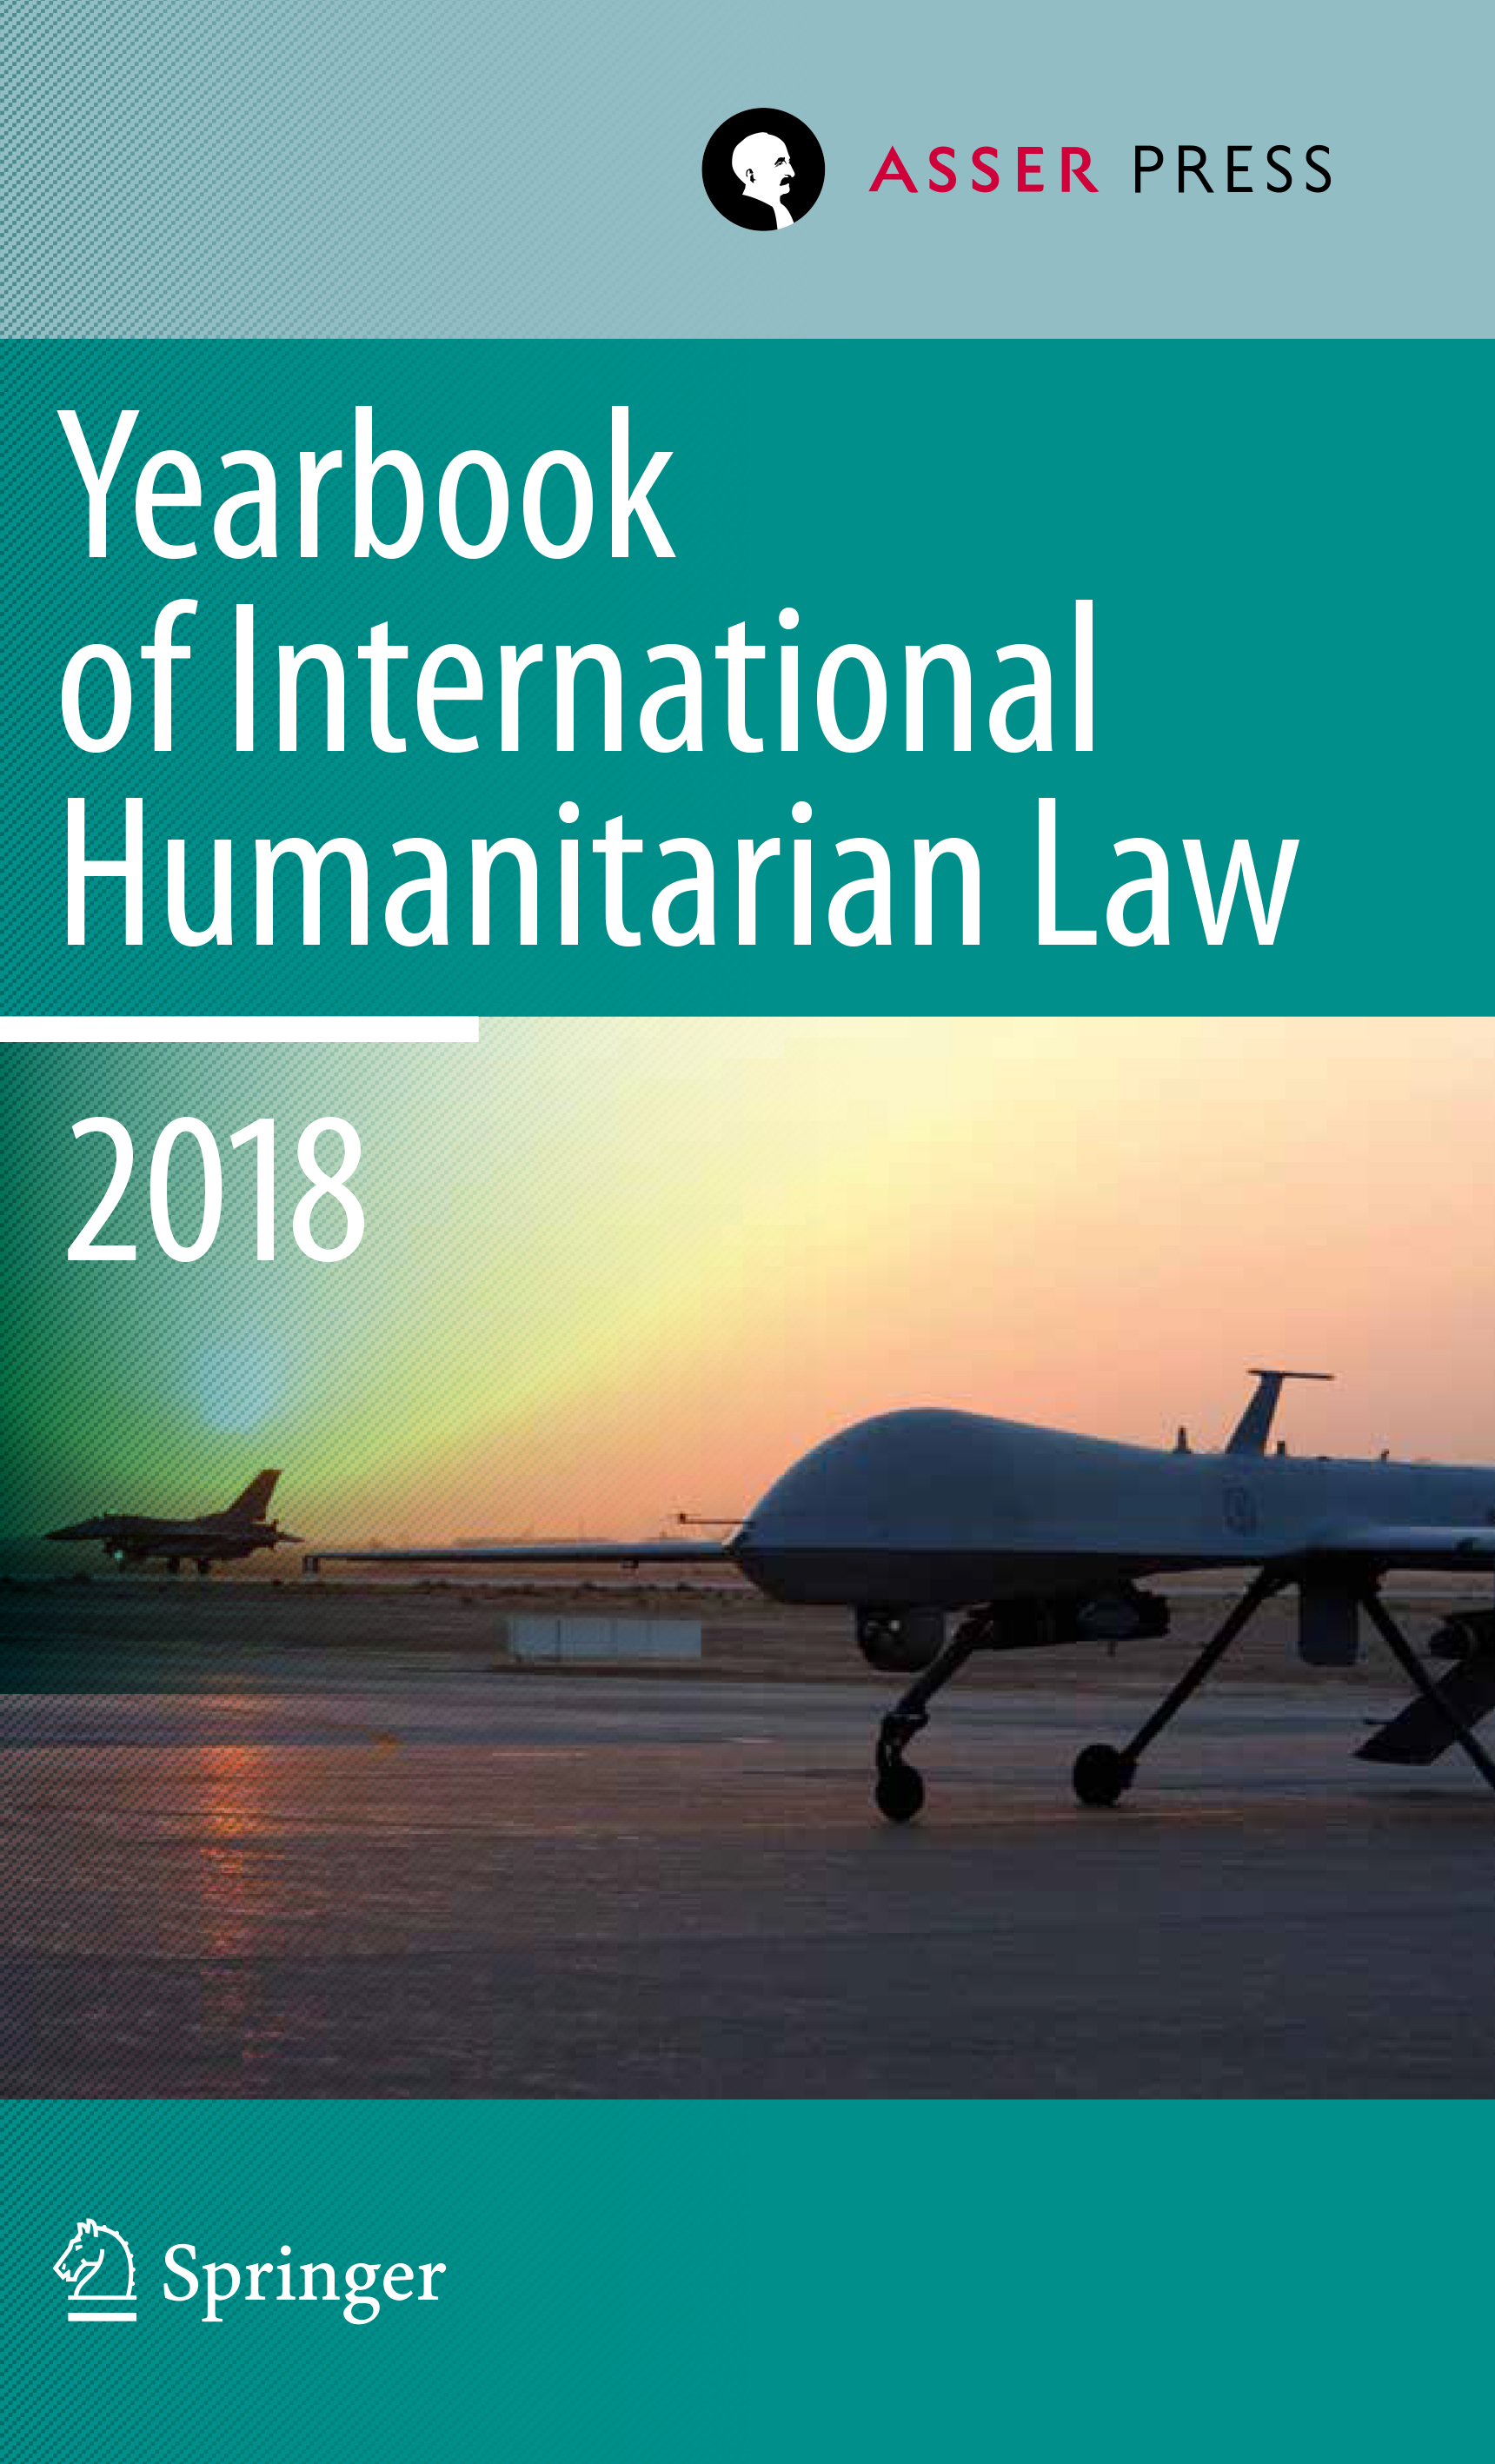 Yearbook of International Humanitarian Law, Volume 21, 2018